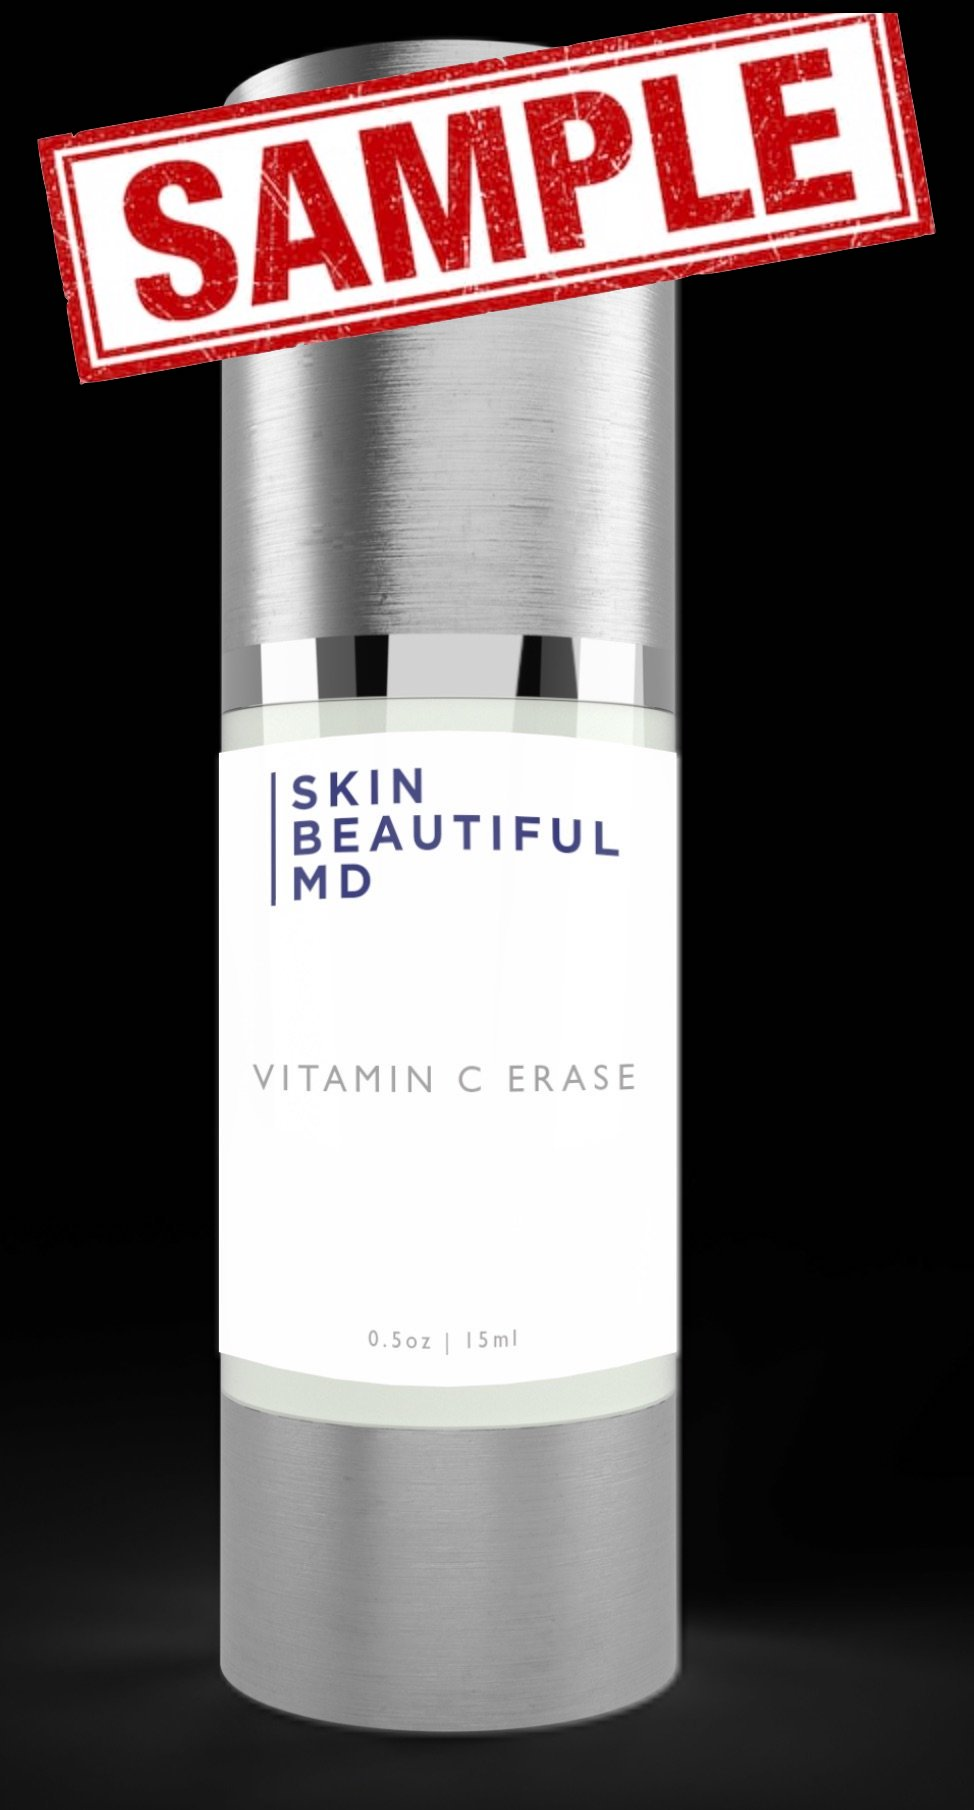 (30 Day Sample Offer) Skin Beautiful MD Instant Wrinkle Erase C Serum